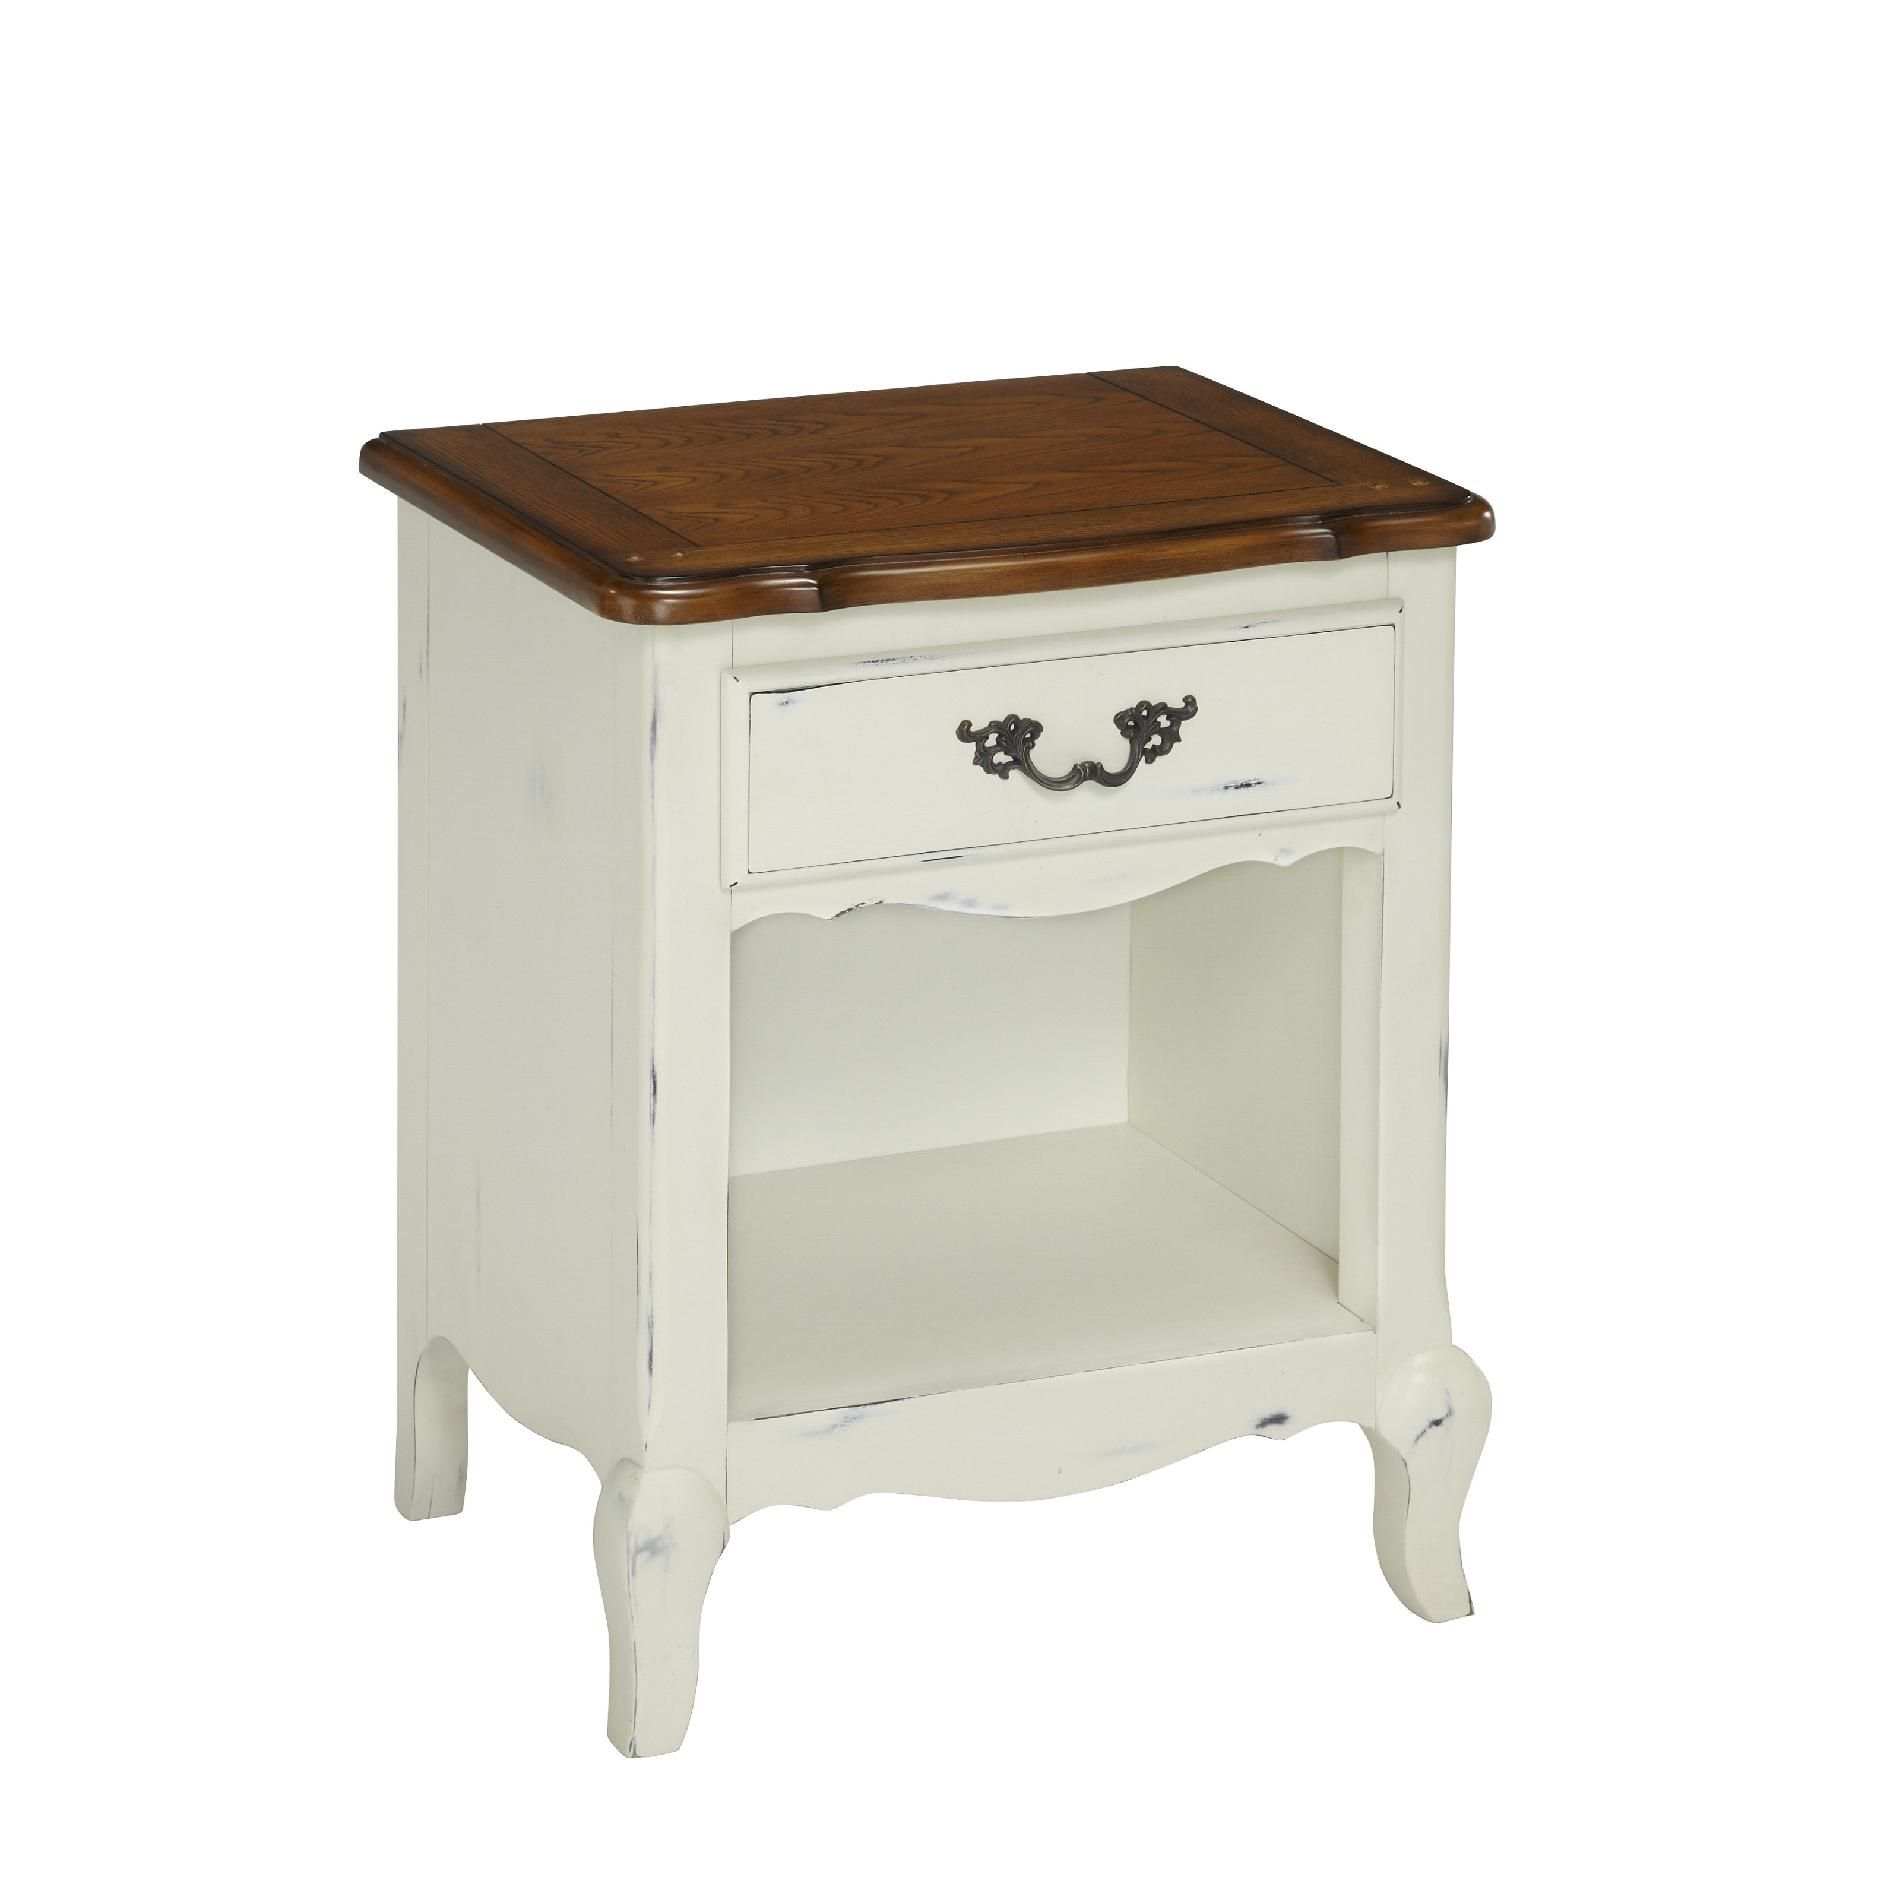 home styles oak and rubbed white french countryside night stand threshold margate accent table used ethan allen coffee tables jones small glass lamps modern dining napkins buffet